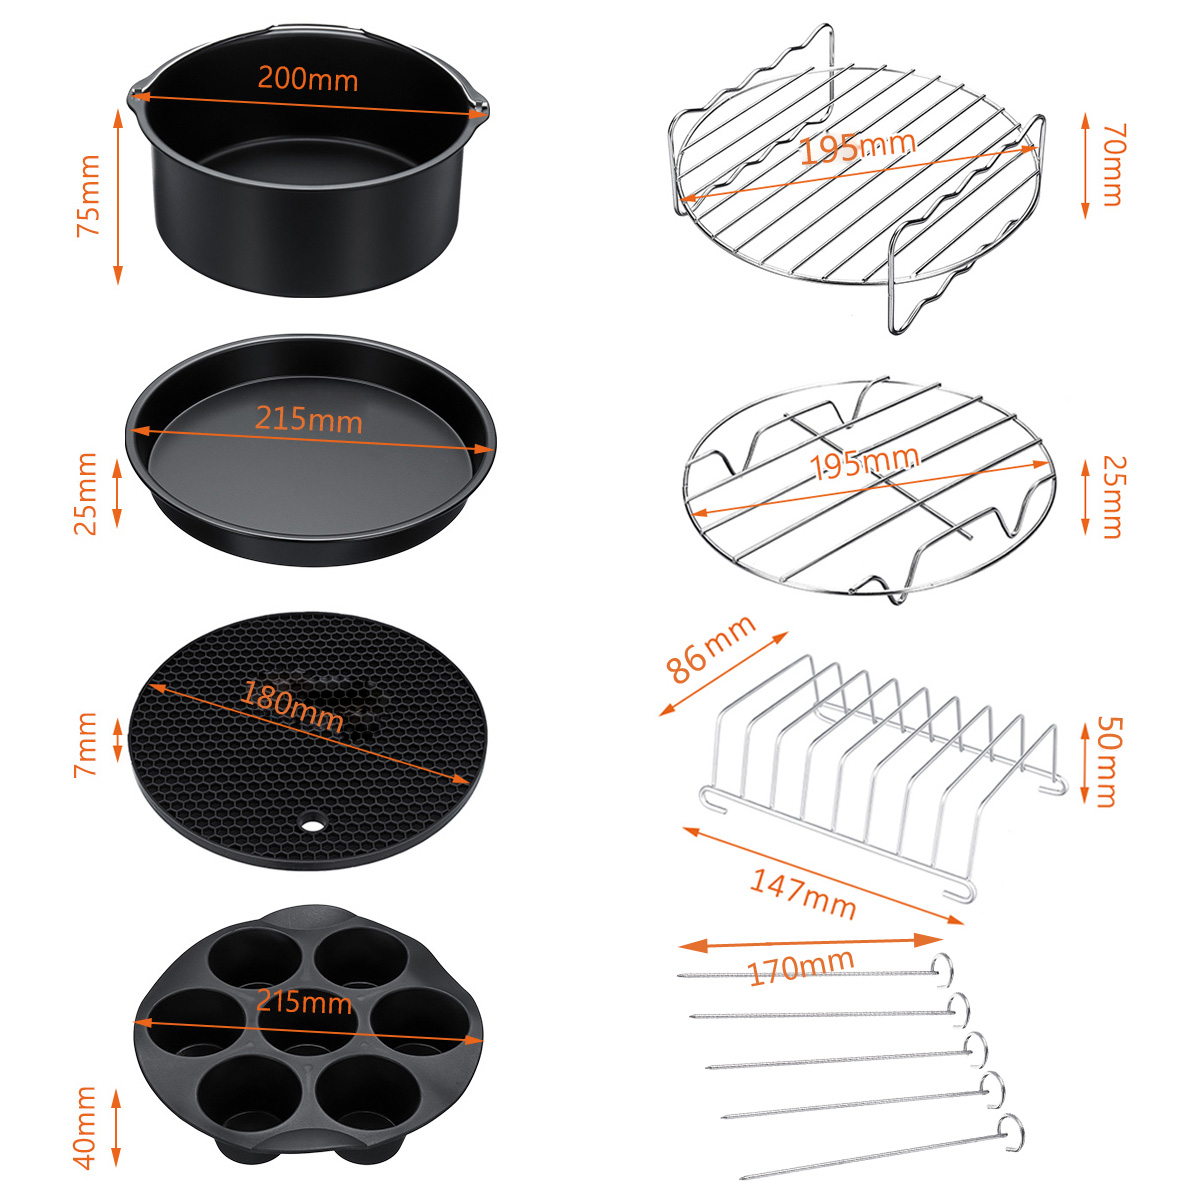 12x Air Fryer Accessories 9 Inch Fit For Airfryer 5.2-6.8QT Baking Basket Pizza Plate Grill Pot Kitchen Cooking Tool For Party